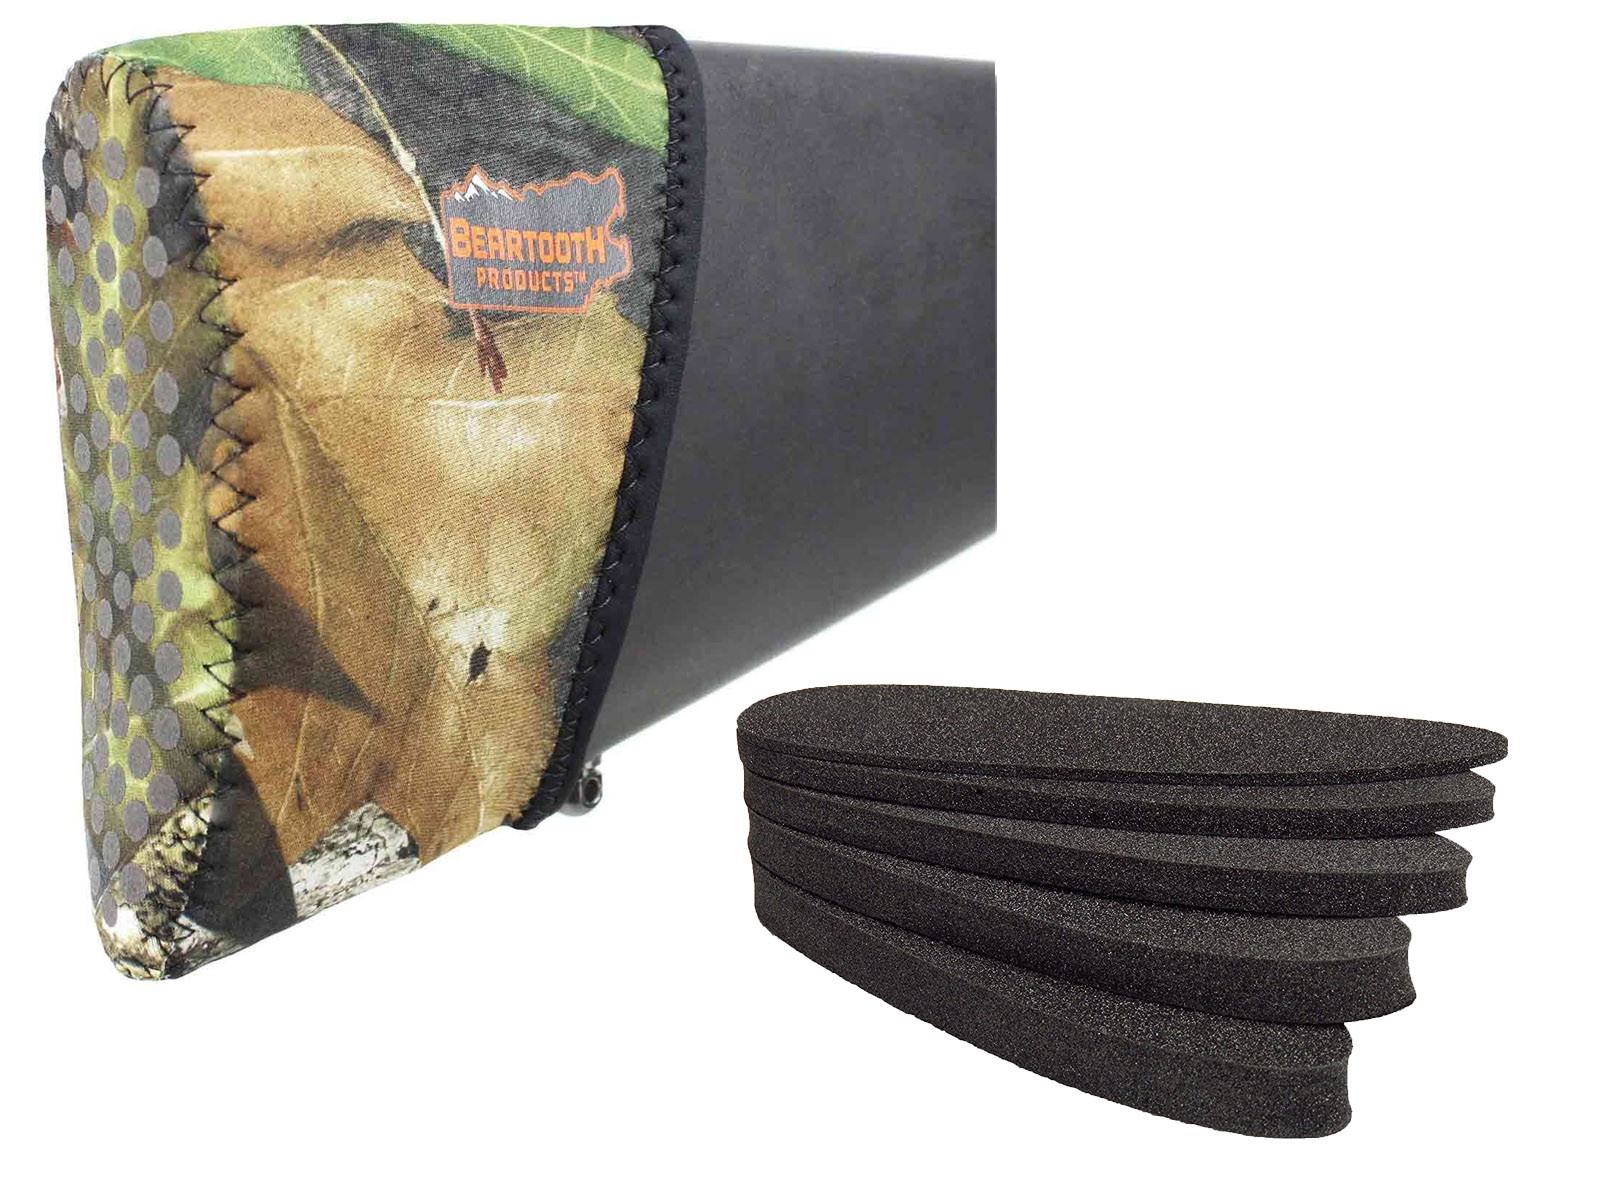 Beartooth Recoil Pad Kit - Mossy Oak Camo